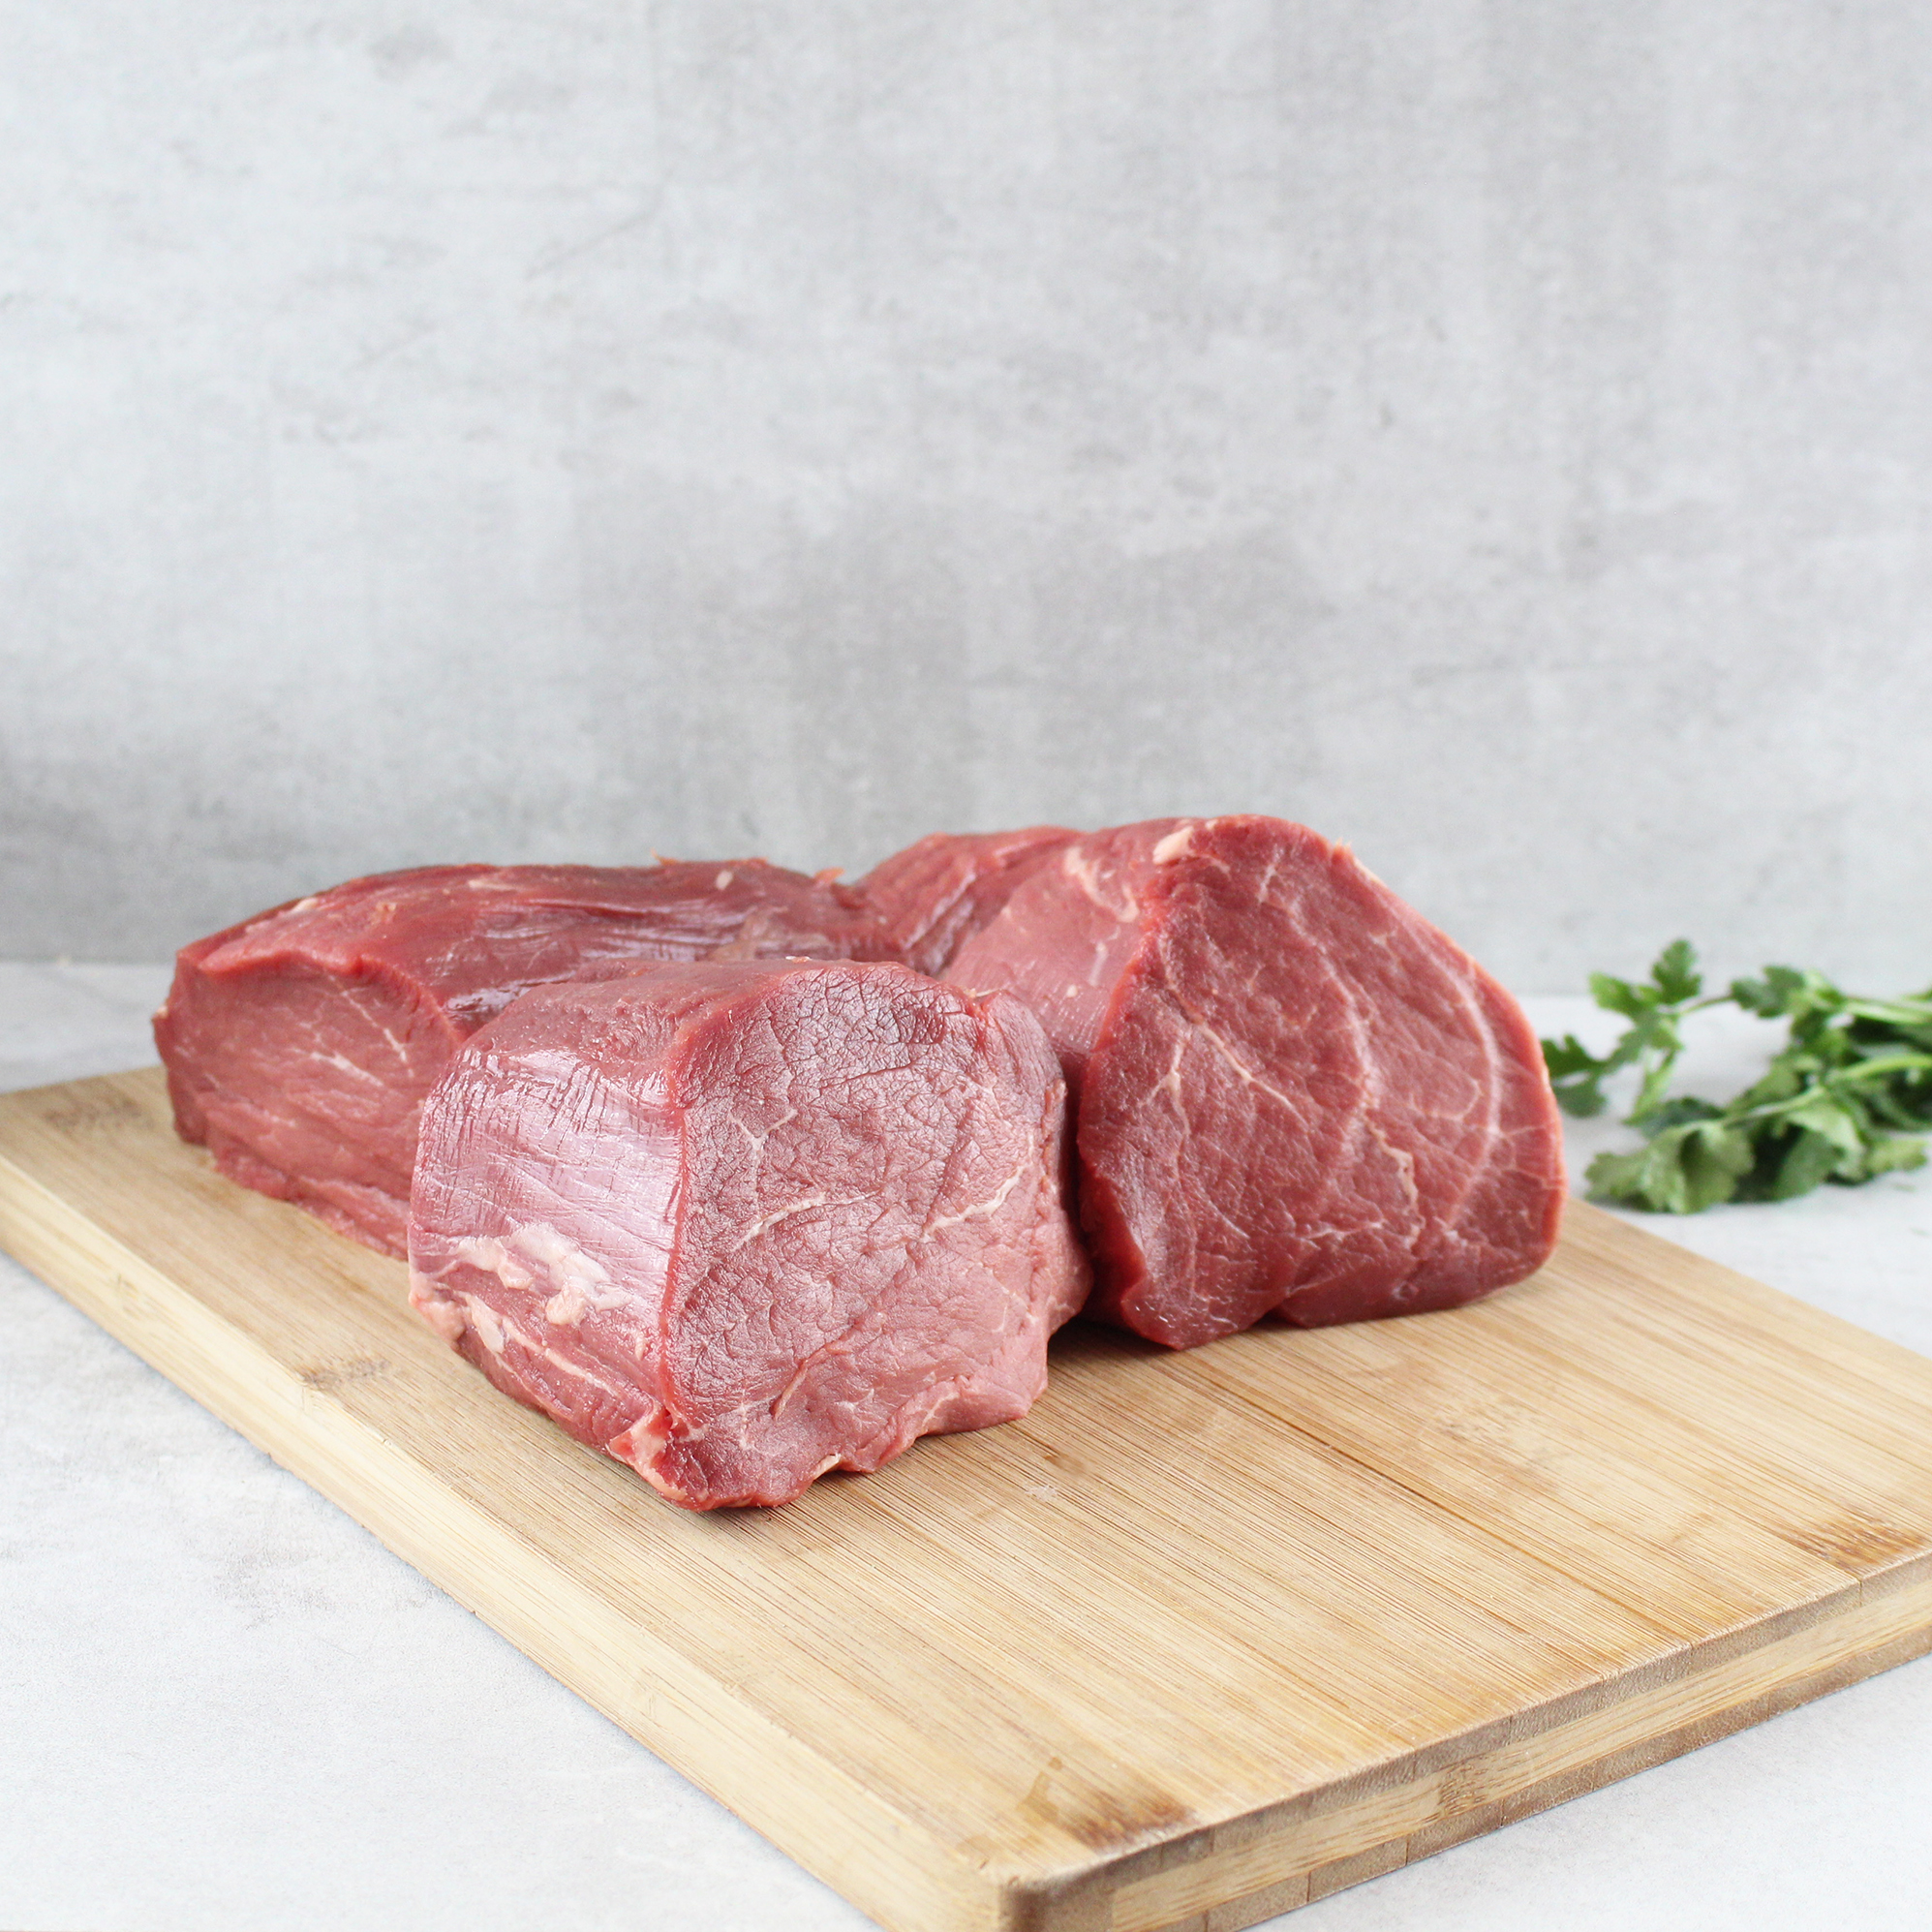 dry-aged-rinderfilet-faerse-d.-ca.-23-30-kg-stueck-markthalle20-1